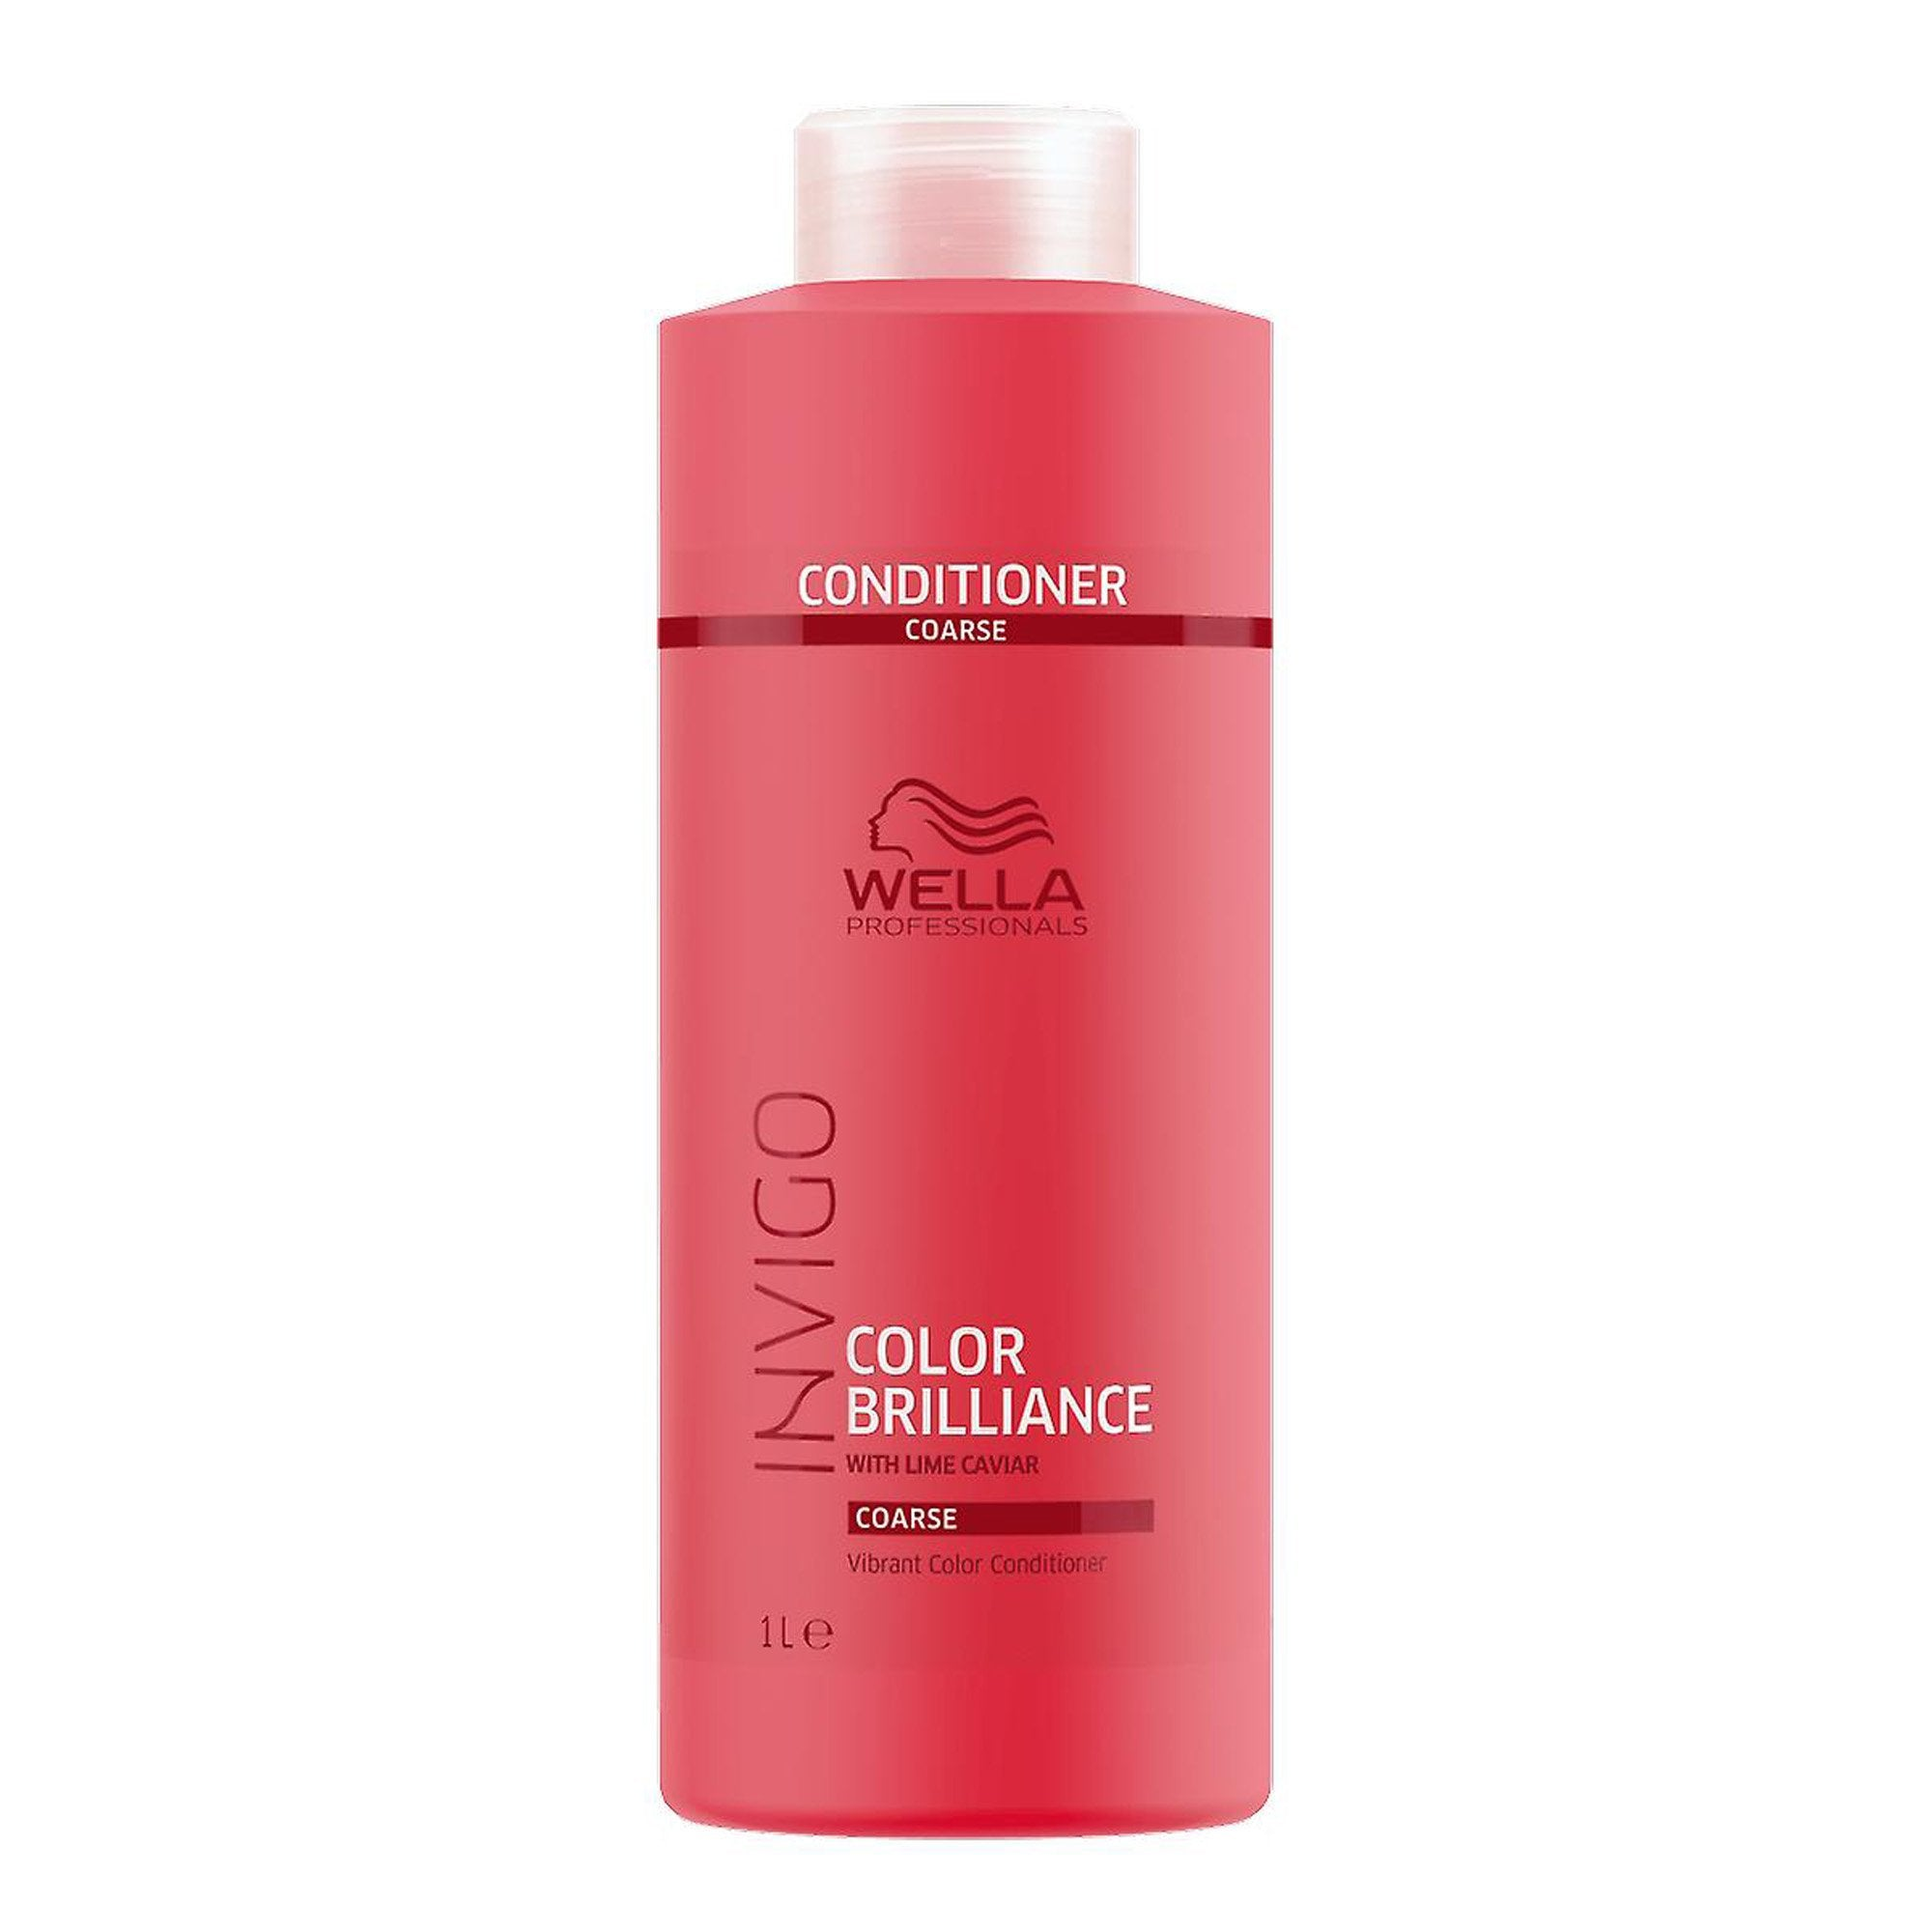 Imagen del producto Invigo Color Brilliance Conditioner COARSE 1L Lime Caviar | de WELLA